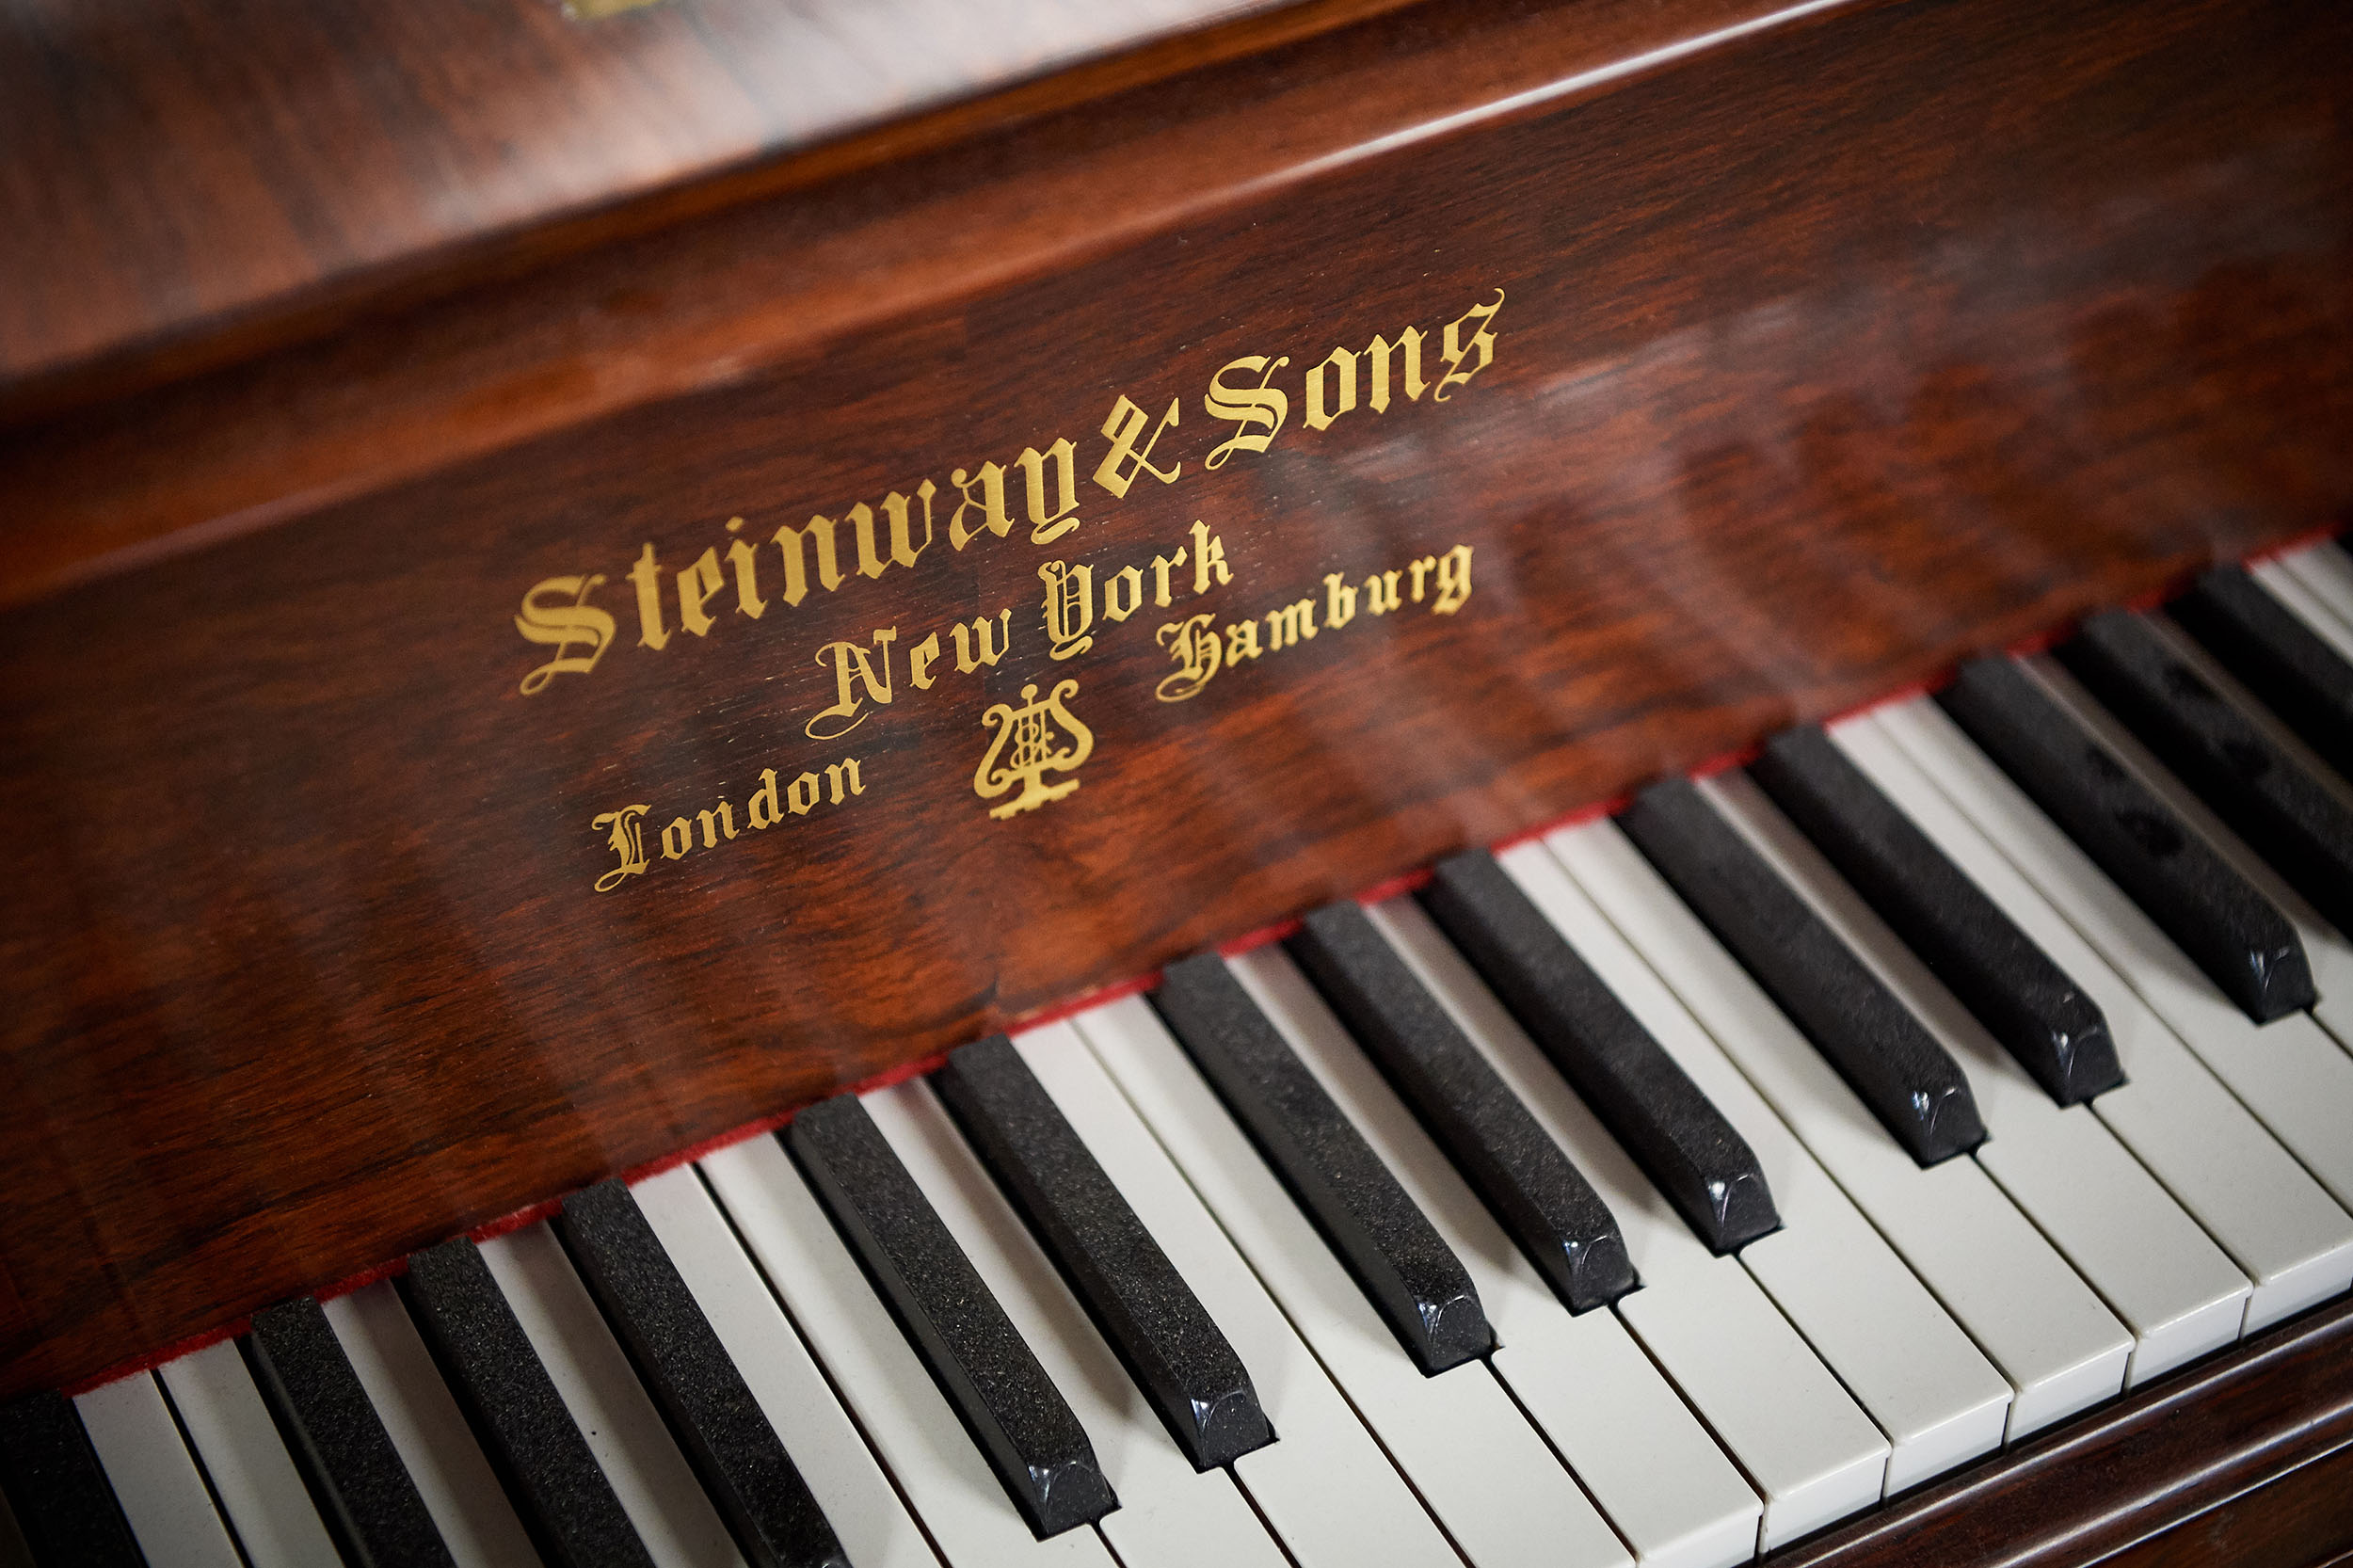 An 1881 Steinway & Sons piano under refreshment at factory. Same age as UConn!